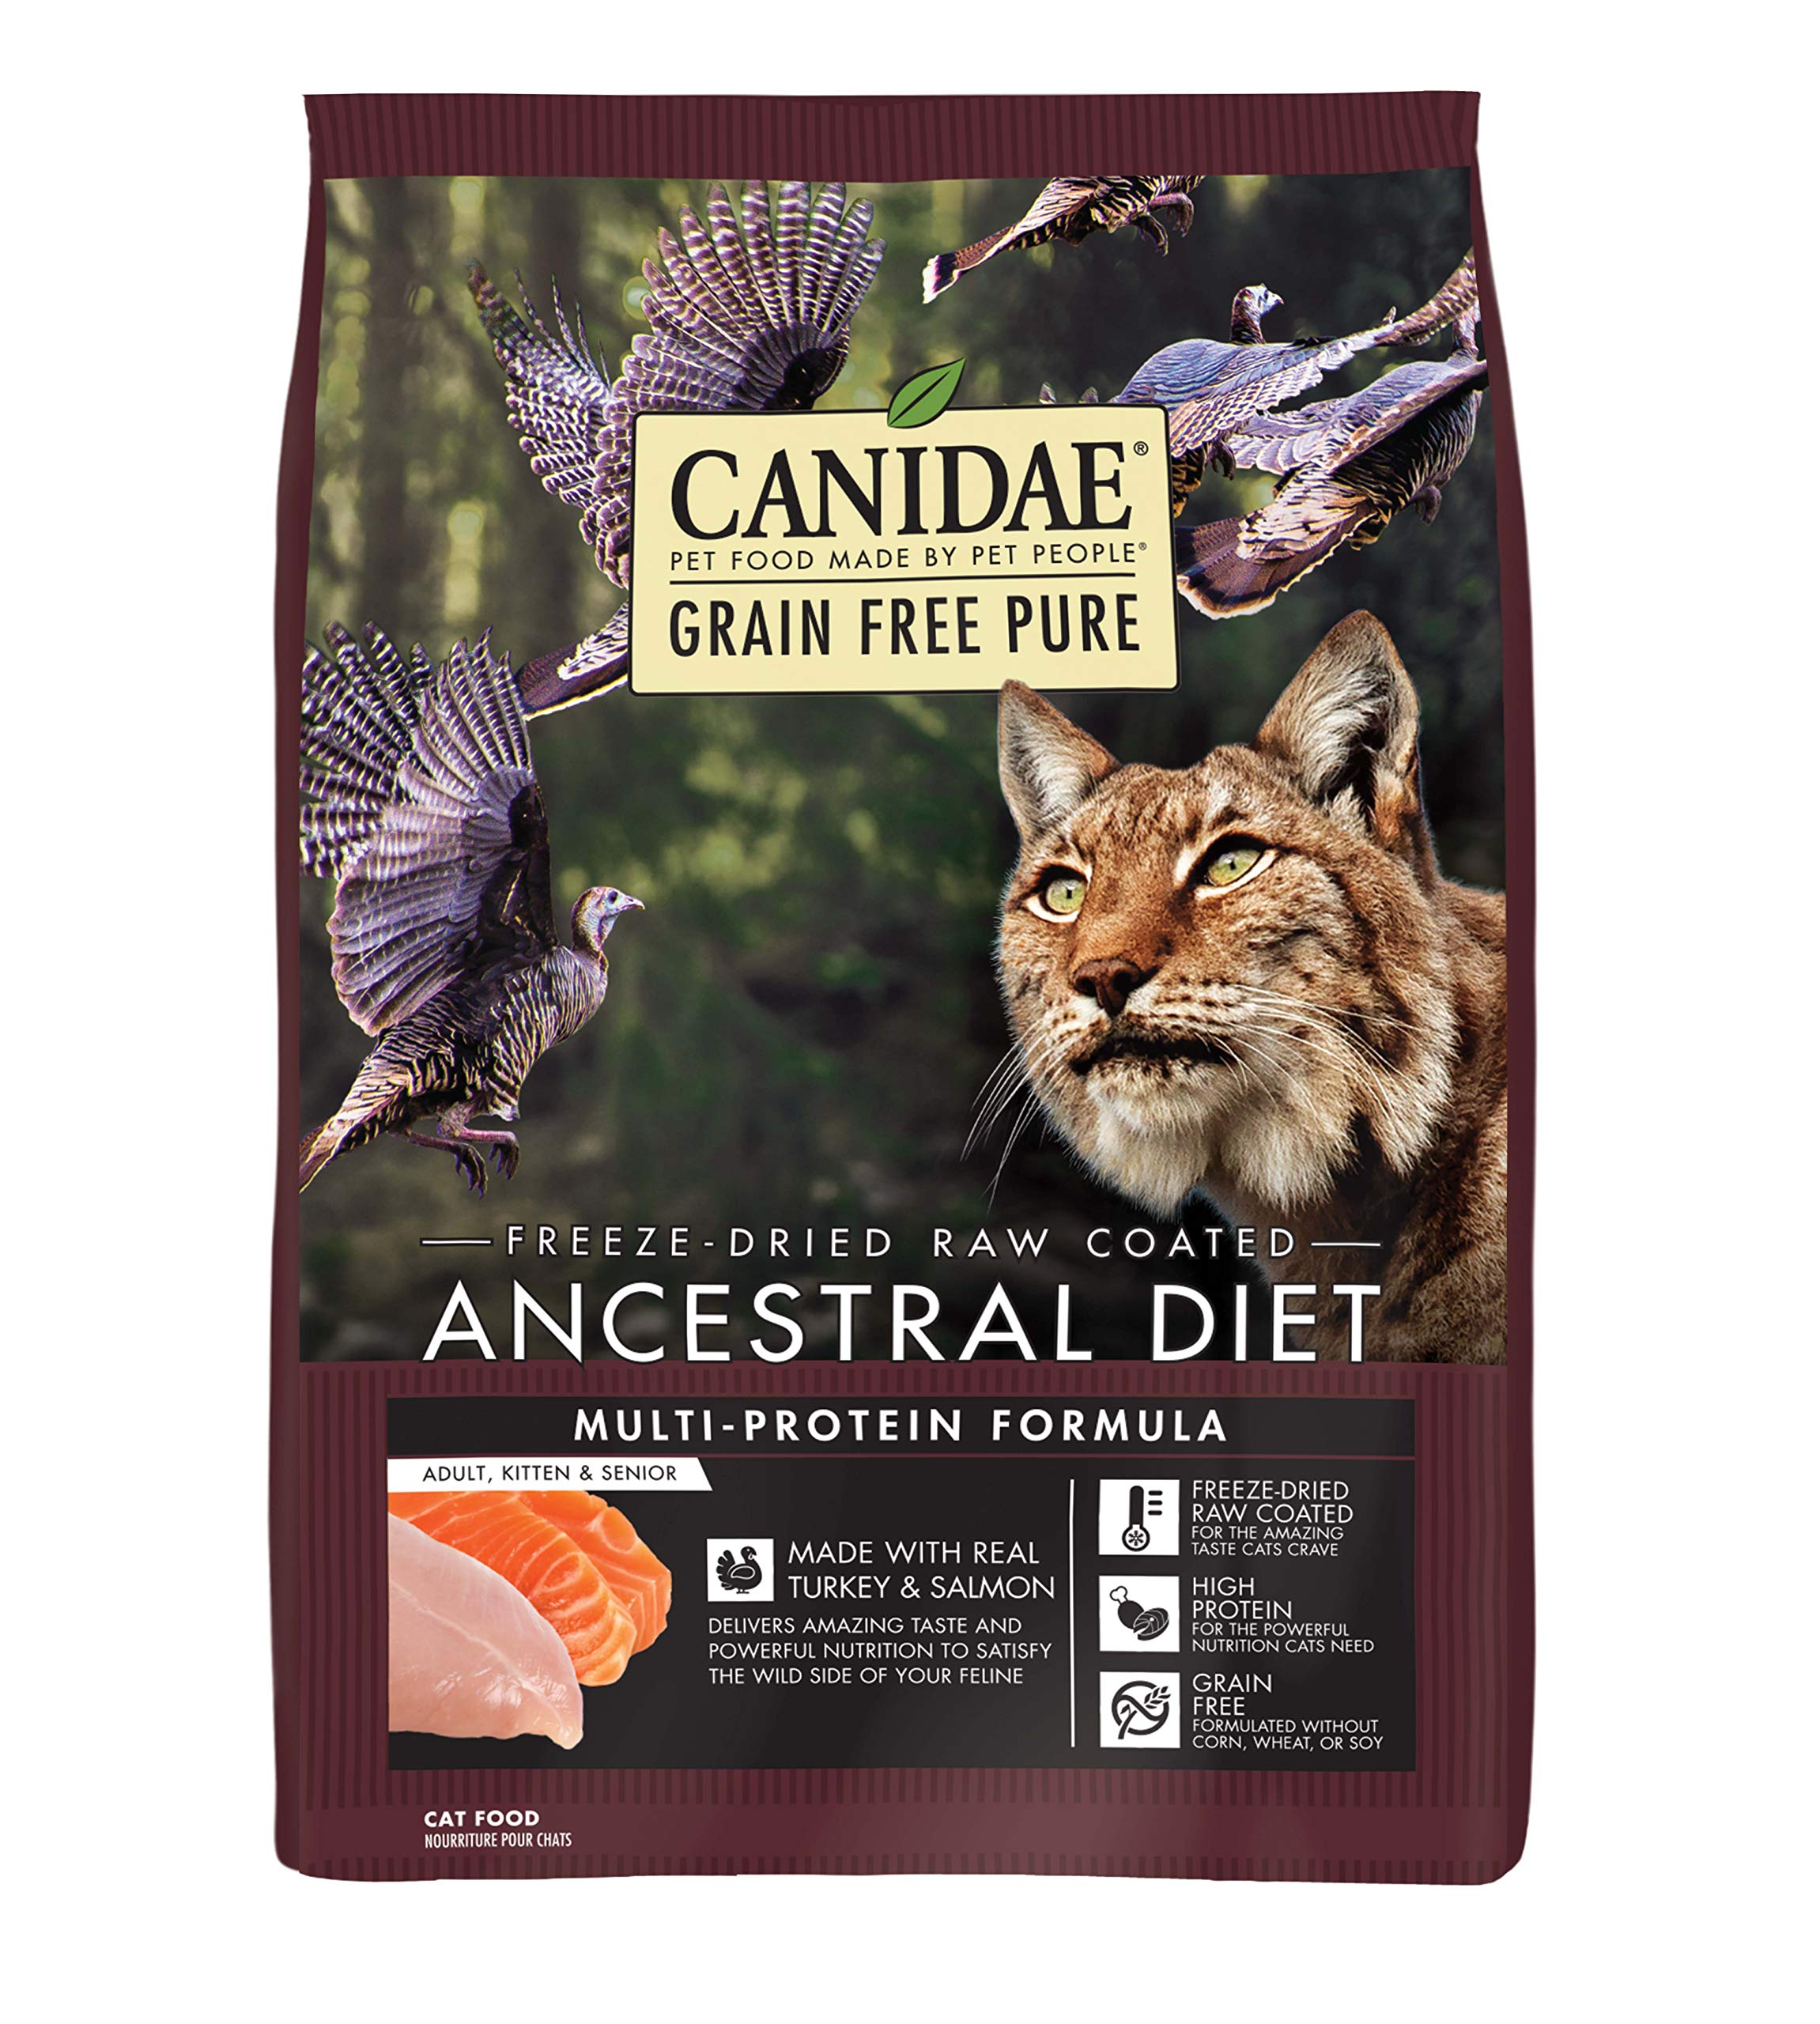 CANIDAE Grain Free Pure Ancestral Diet Freeze-Dried Raw Coated Dry Cat Food, 2.5-Pound, Purple by CANIDAE